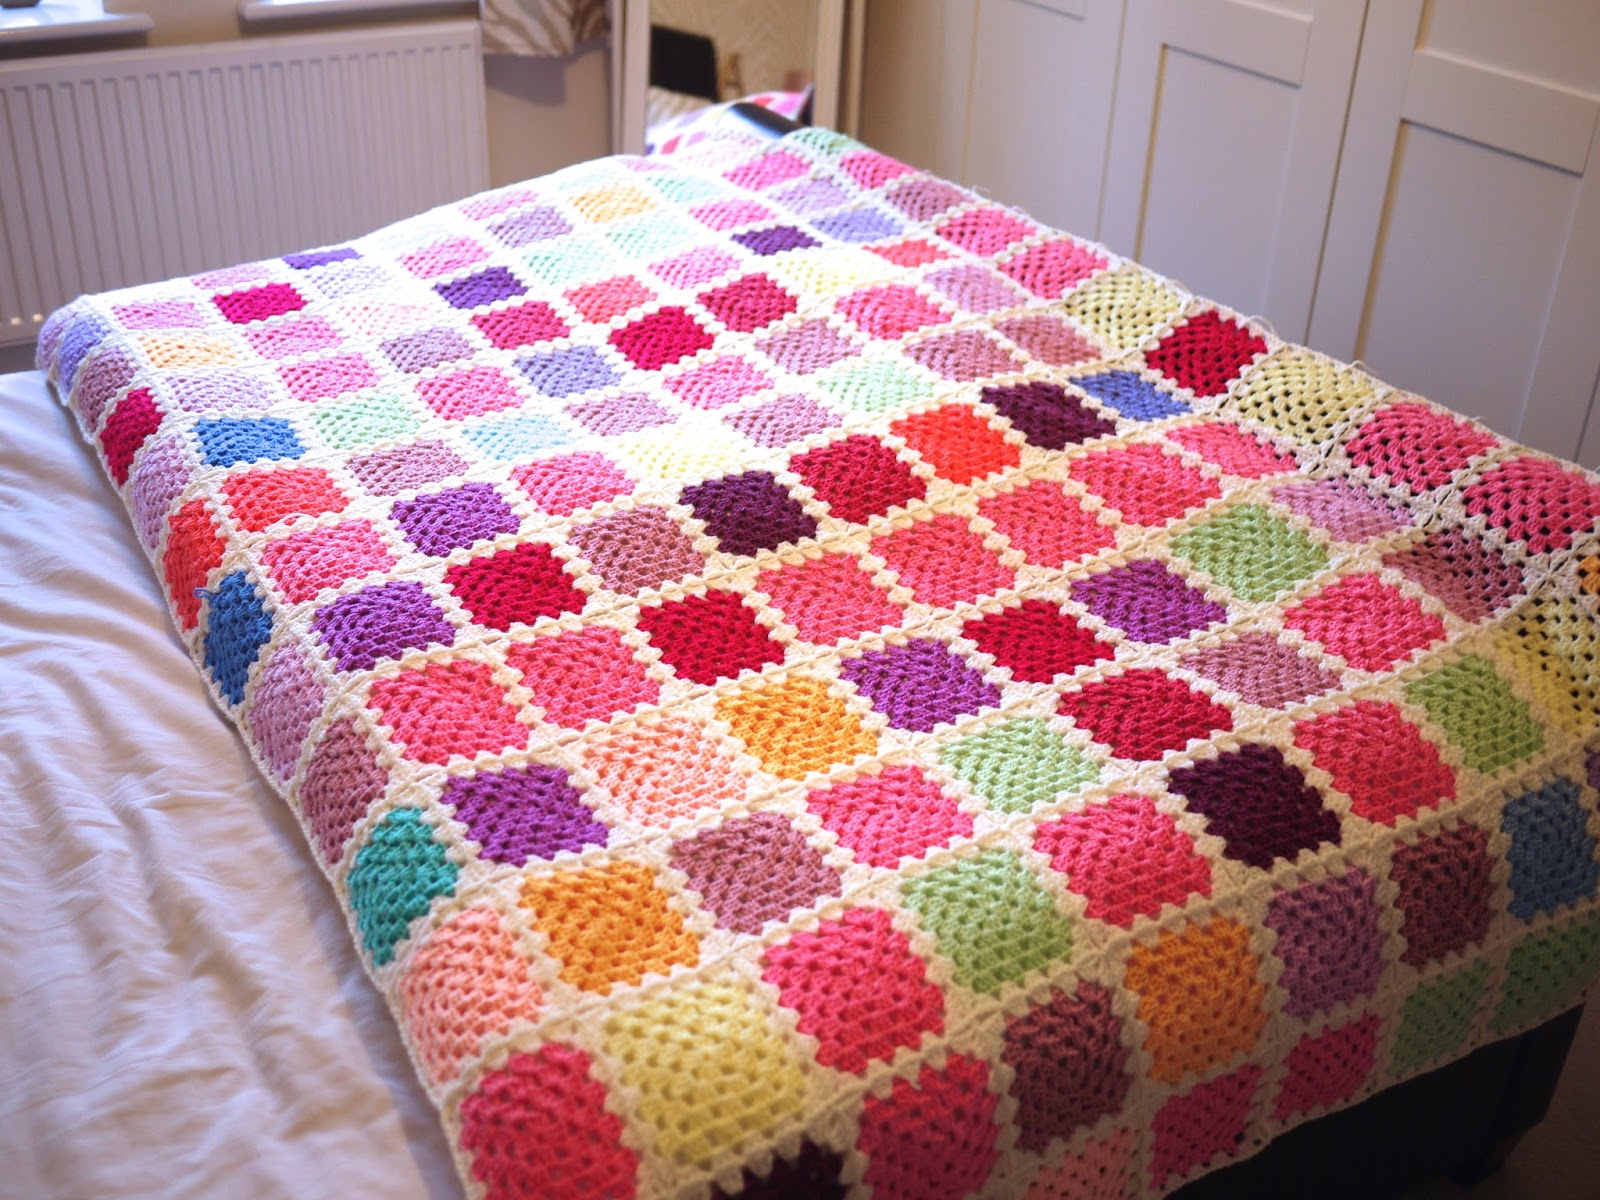 Crochet mood blanket 2014 - Bella Coco by Sarah-Jayne